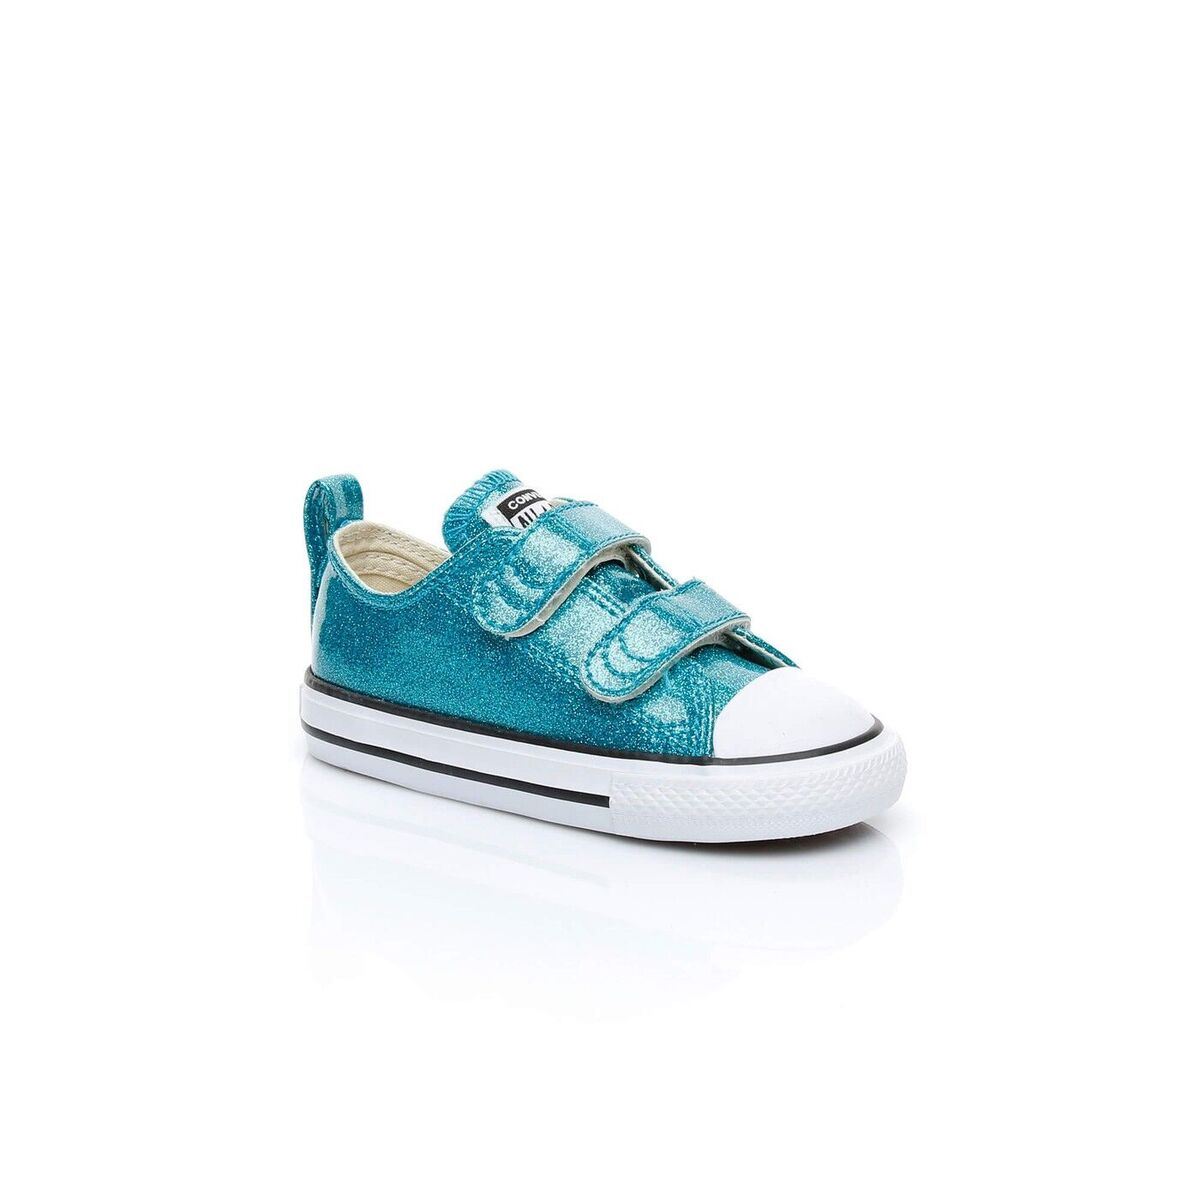 Converse Chuck Taylor All Star Glitter Hi Light Blue Synthetic Baby Trainers